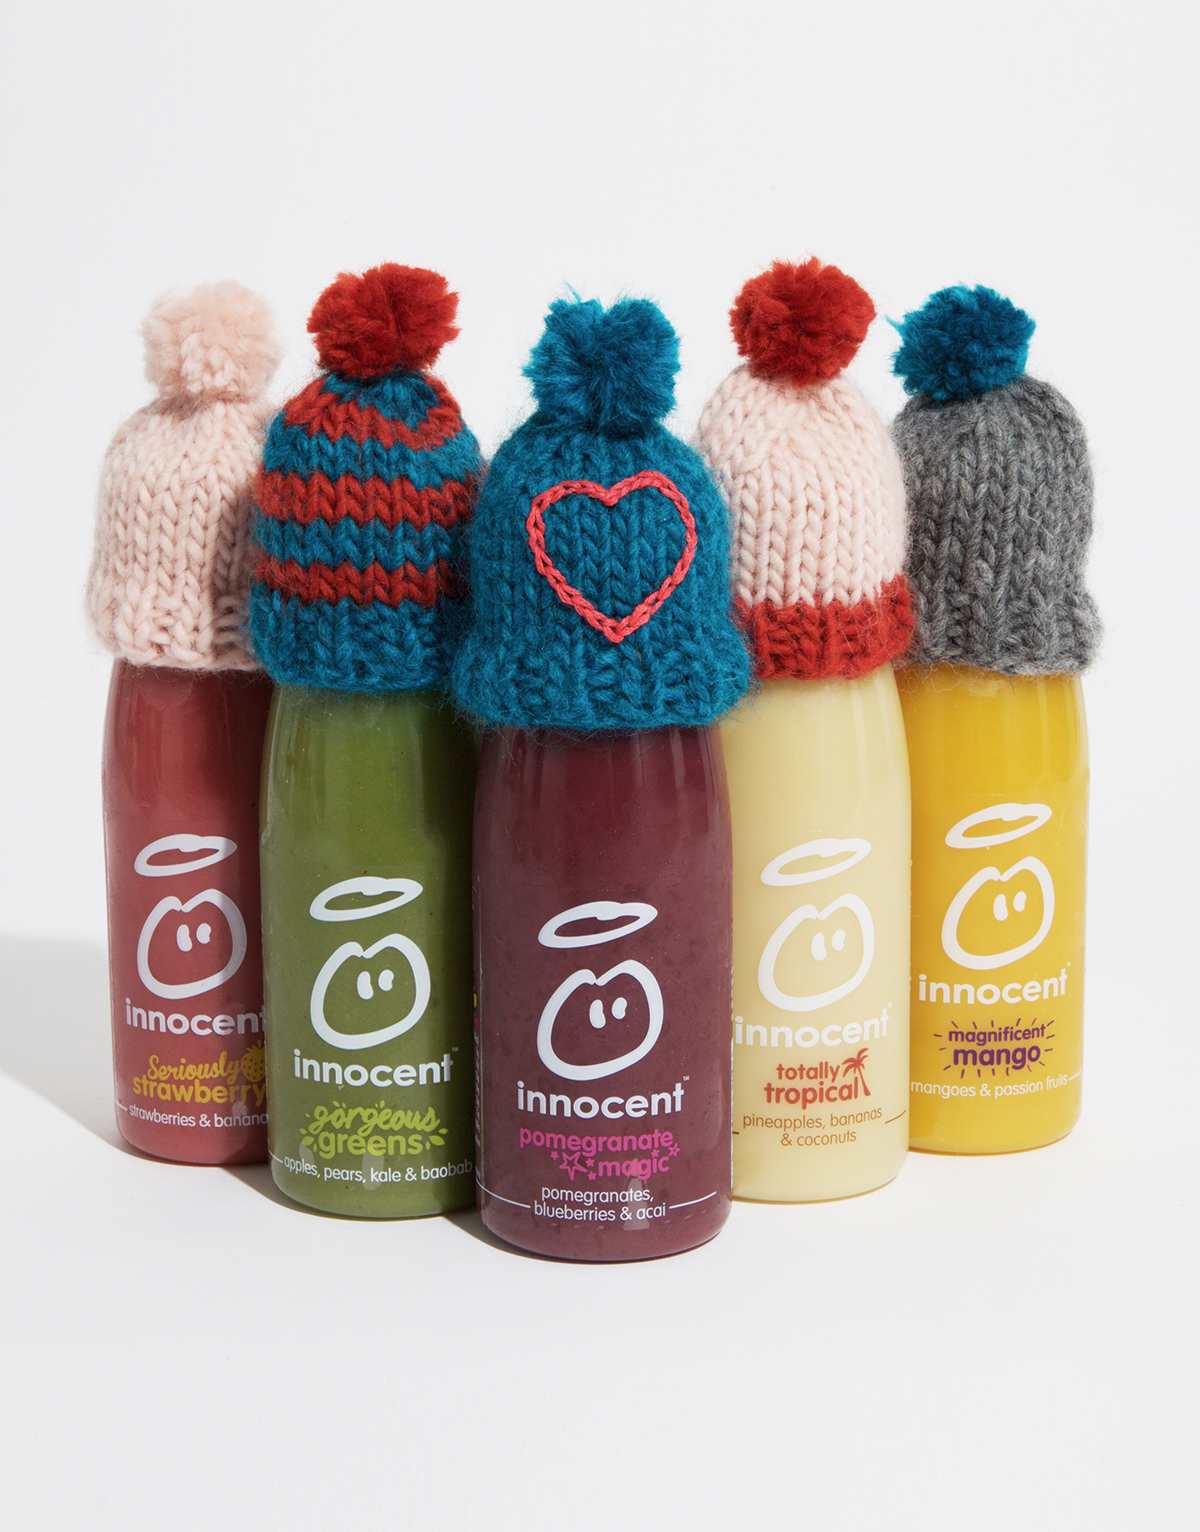 a806842e6 WATG x INNOCENT: HOW TO MAKE A HAT FOR THE BIG KNIT   Wool and the ...